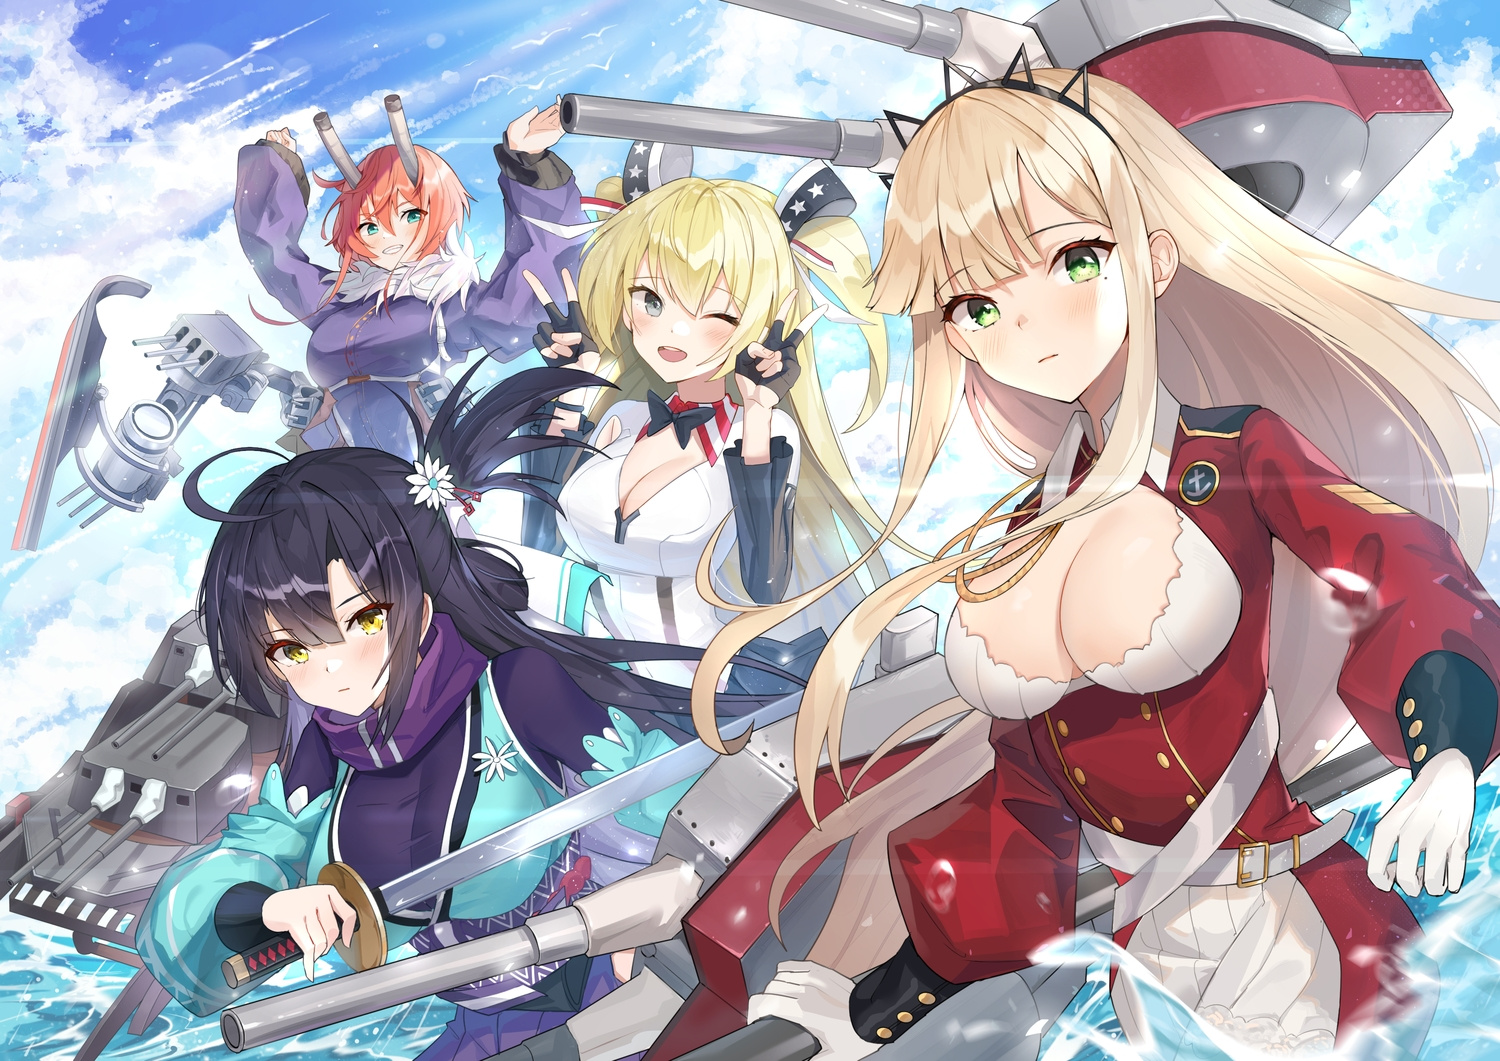 anthropomorphism blue_oath breasts cleavage cleveland_(blue_oath) dopoing group hood_(blue_oath) katana long_hair mechagirl sword tagme_(character) water weapon